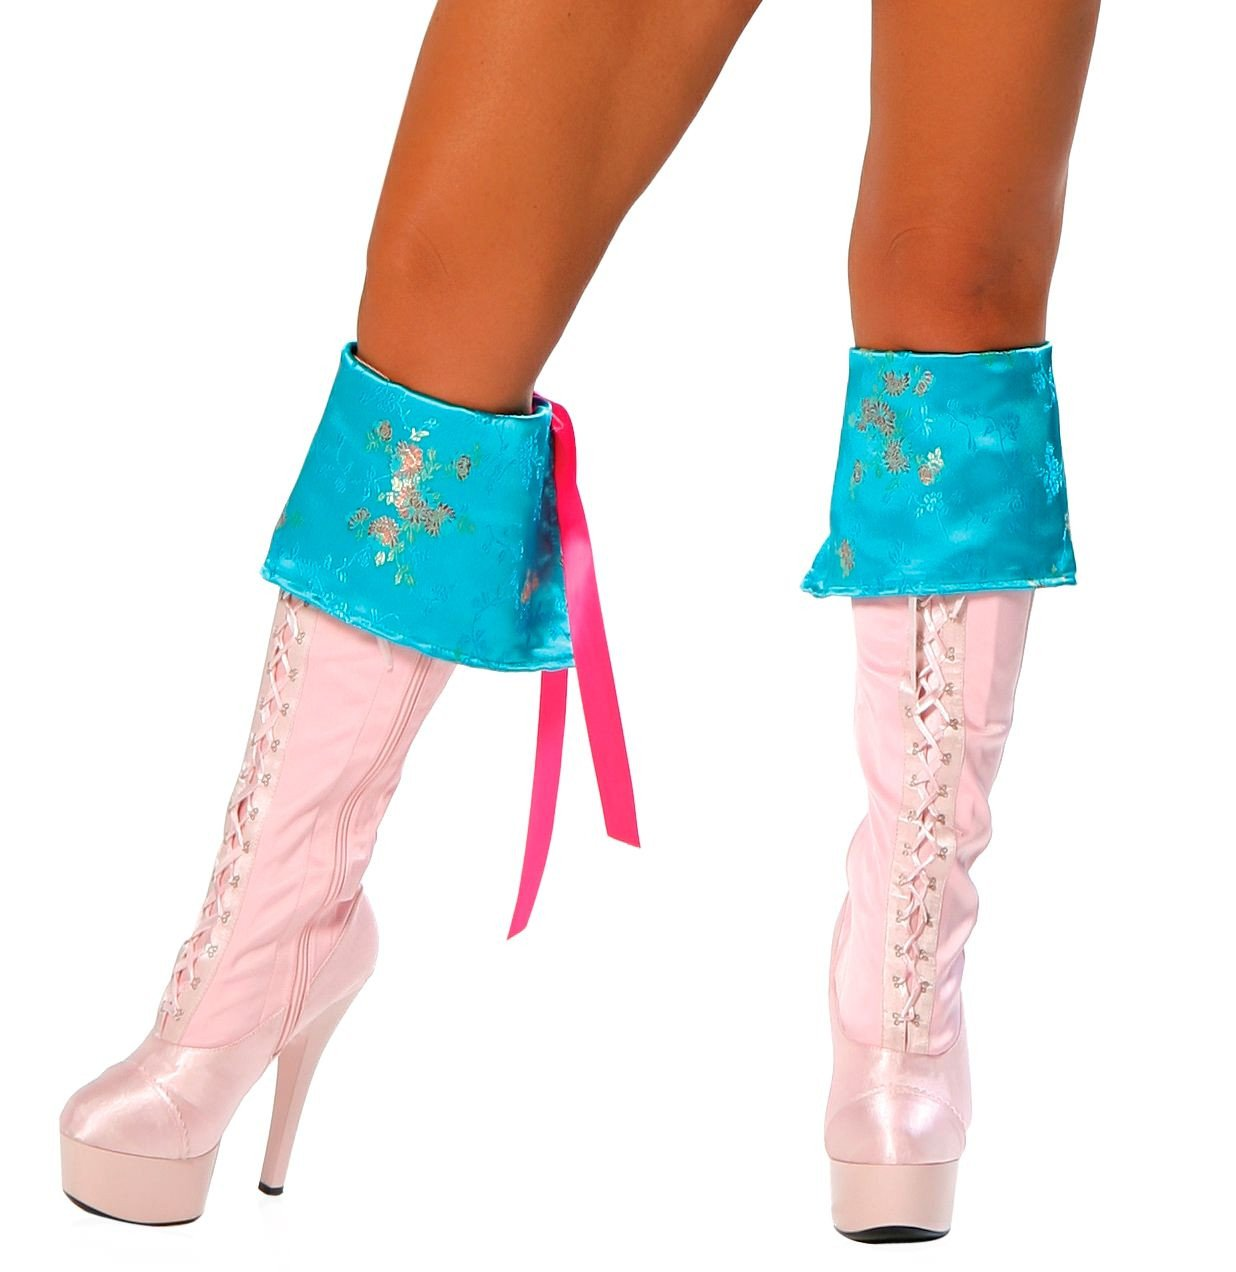 Turquoise Pirate Boot Cuffs - PlaythingsMiami